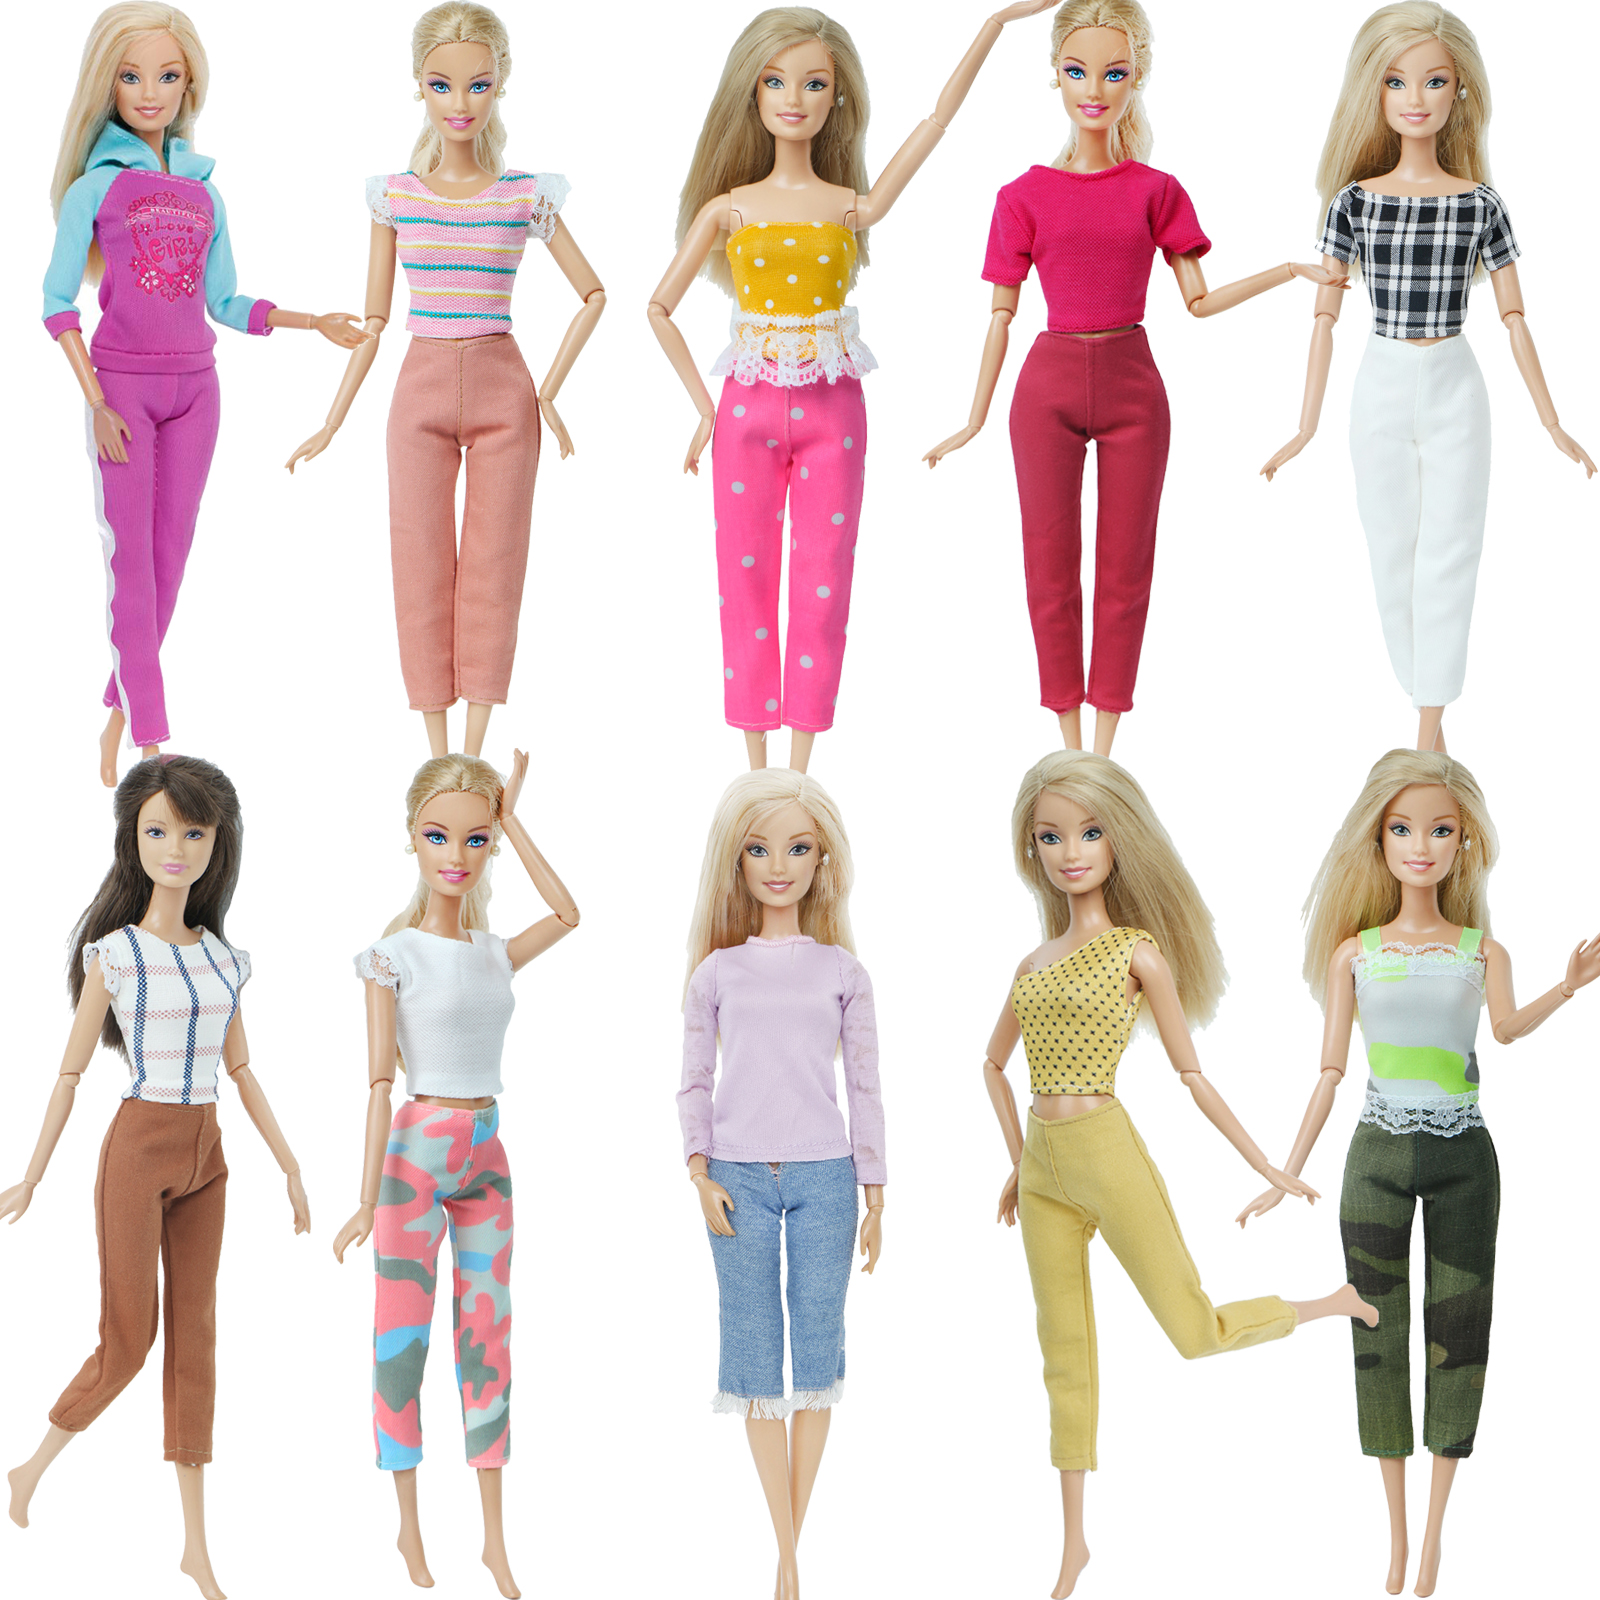 Handmade Princess Doll Outfit Daily Casual Dress T-shirt Pants Trousers Clothes For Barbie Doll Accessories Play House Kids Toy